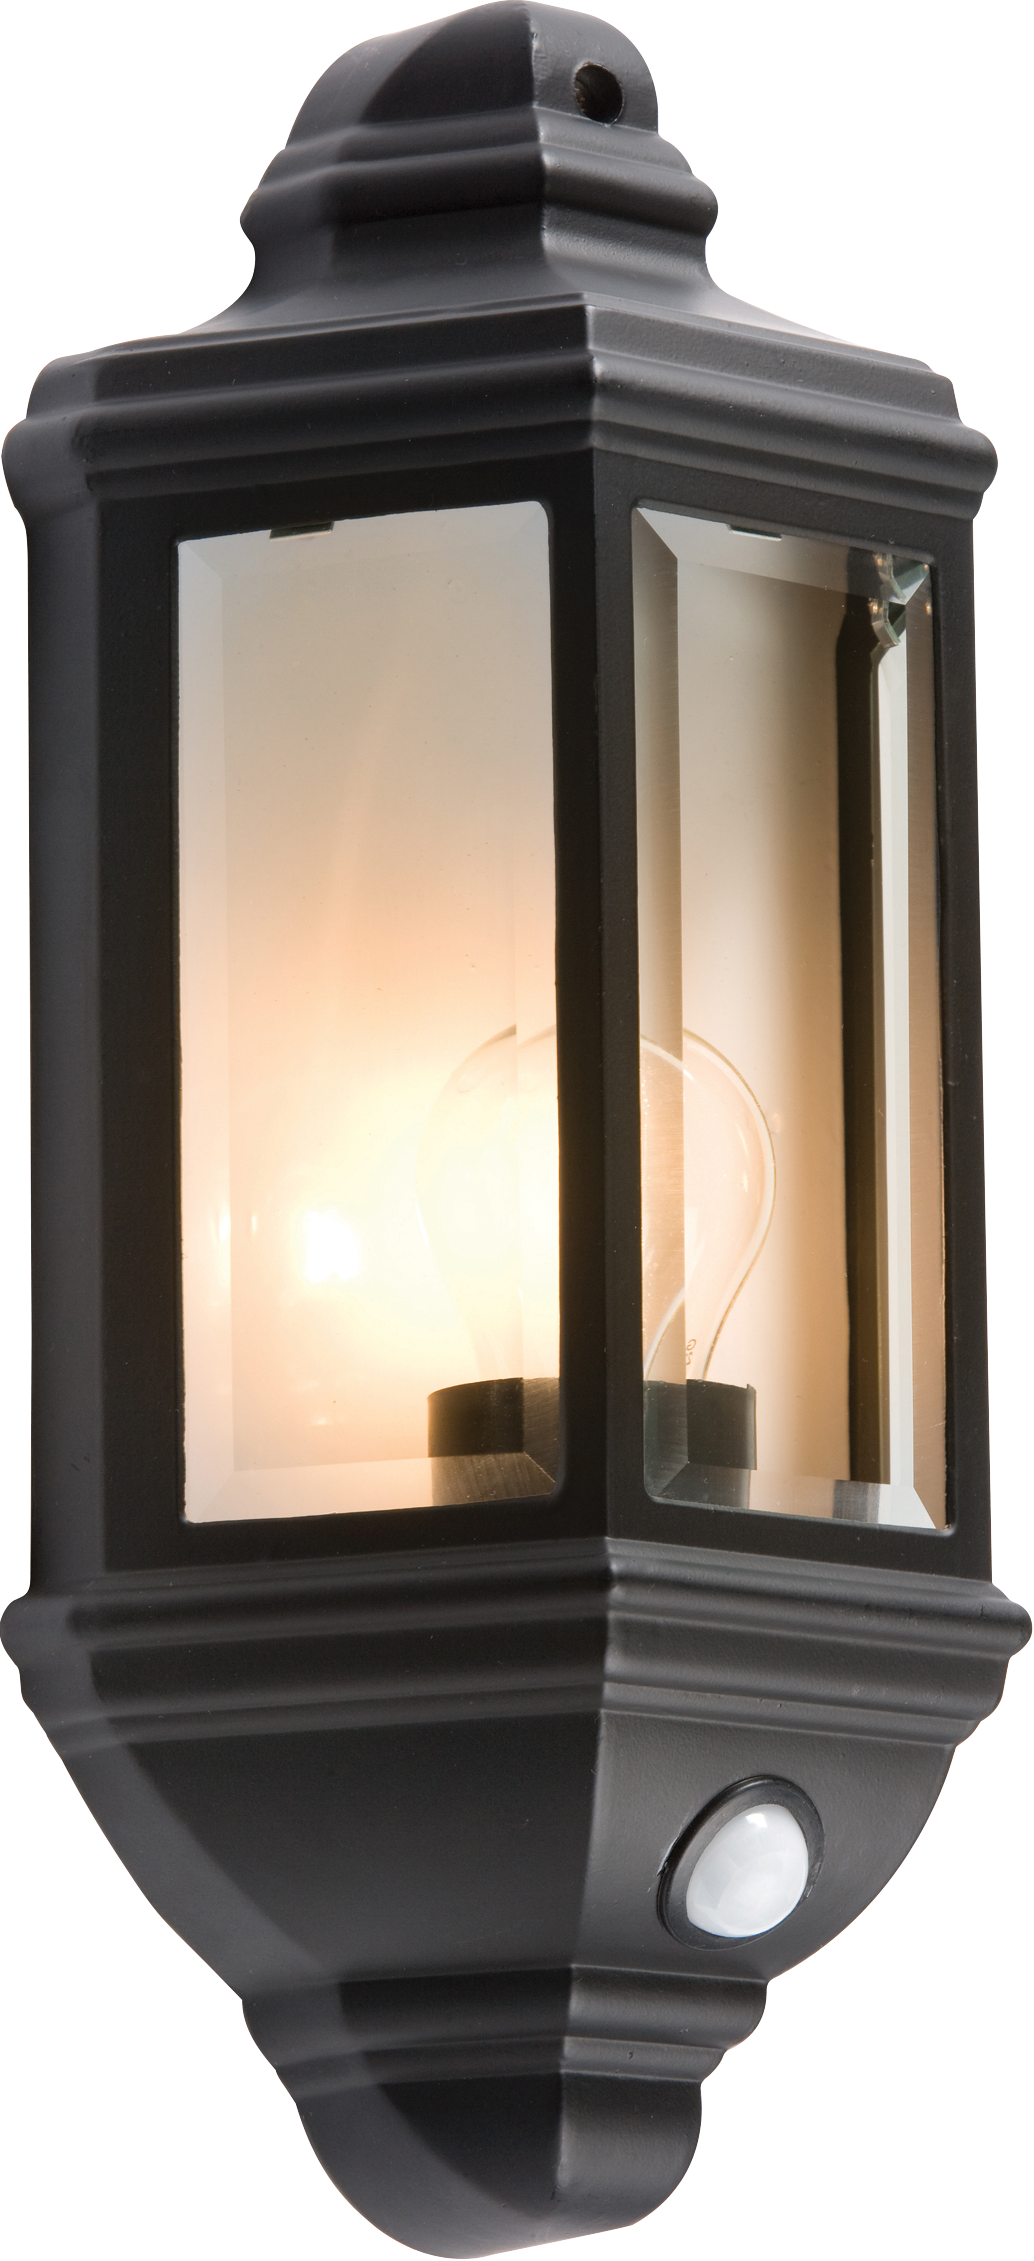 Ip33 60w die cast aluminium clear glass wall lantern with for Transparent glass wall